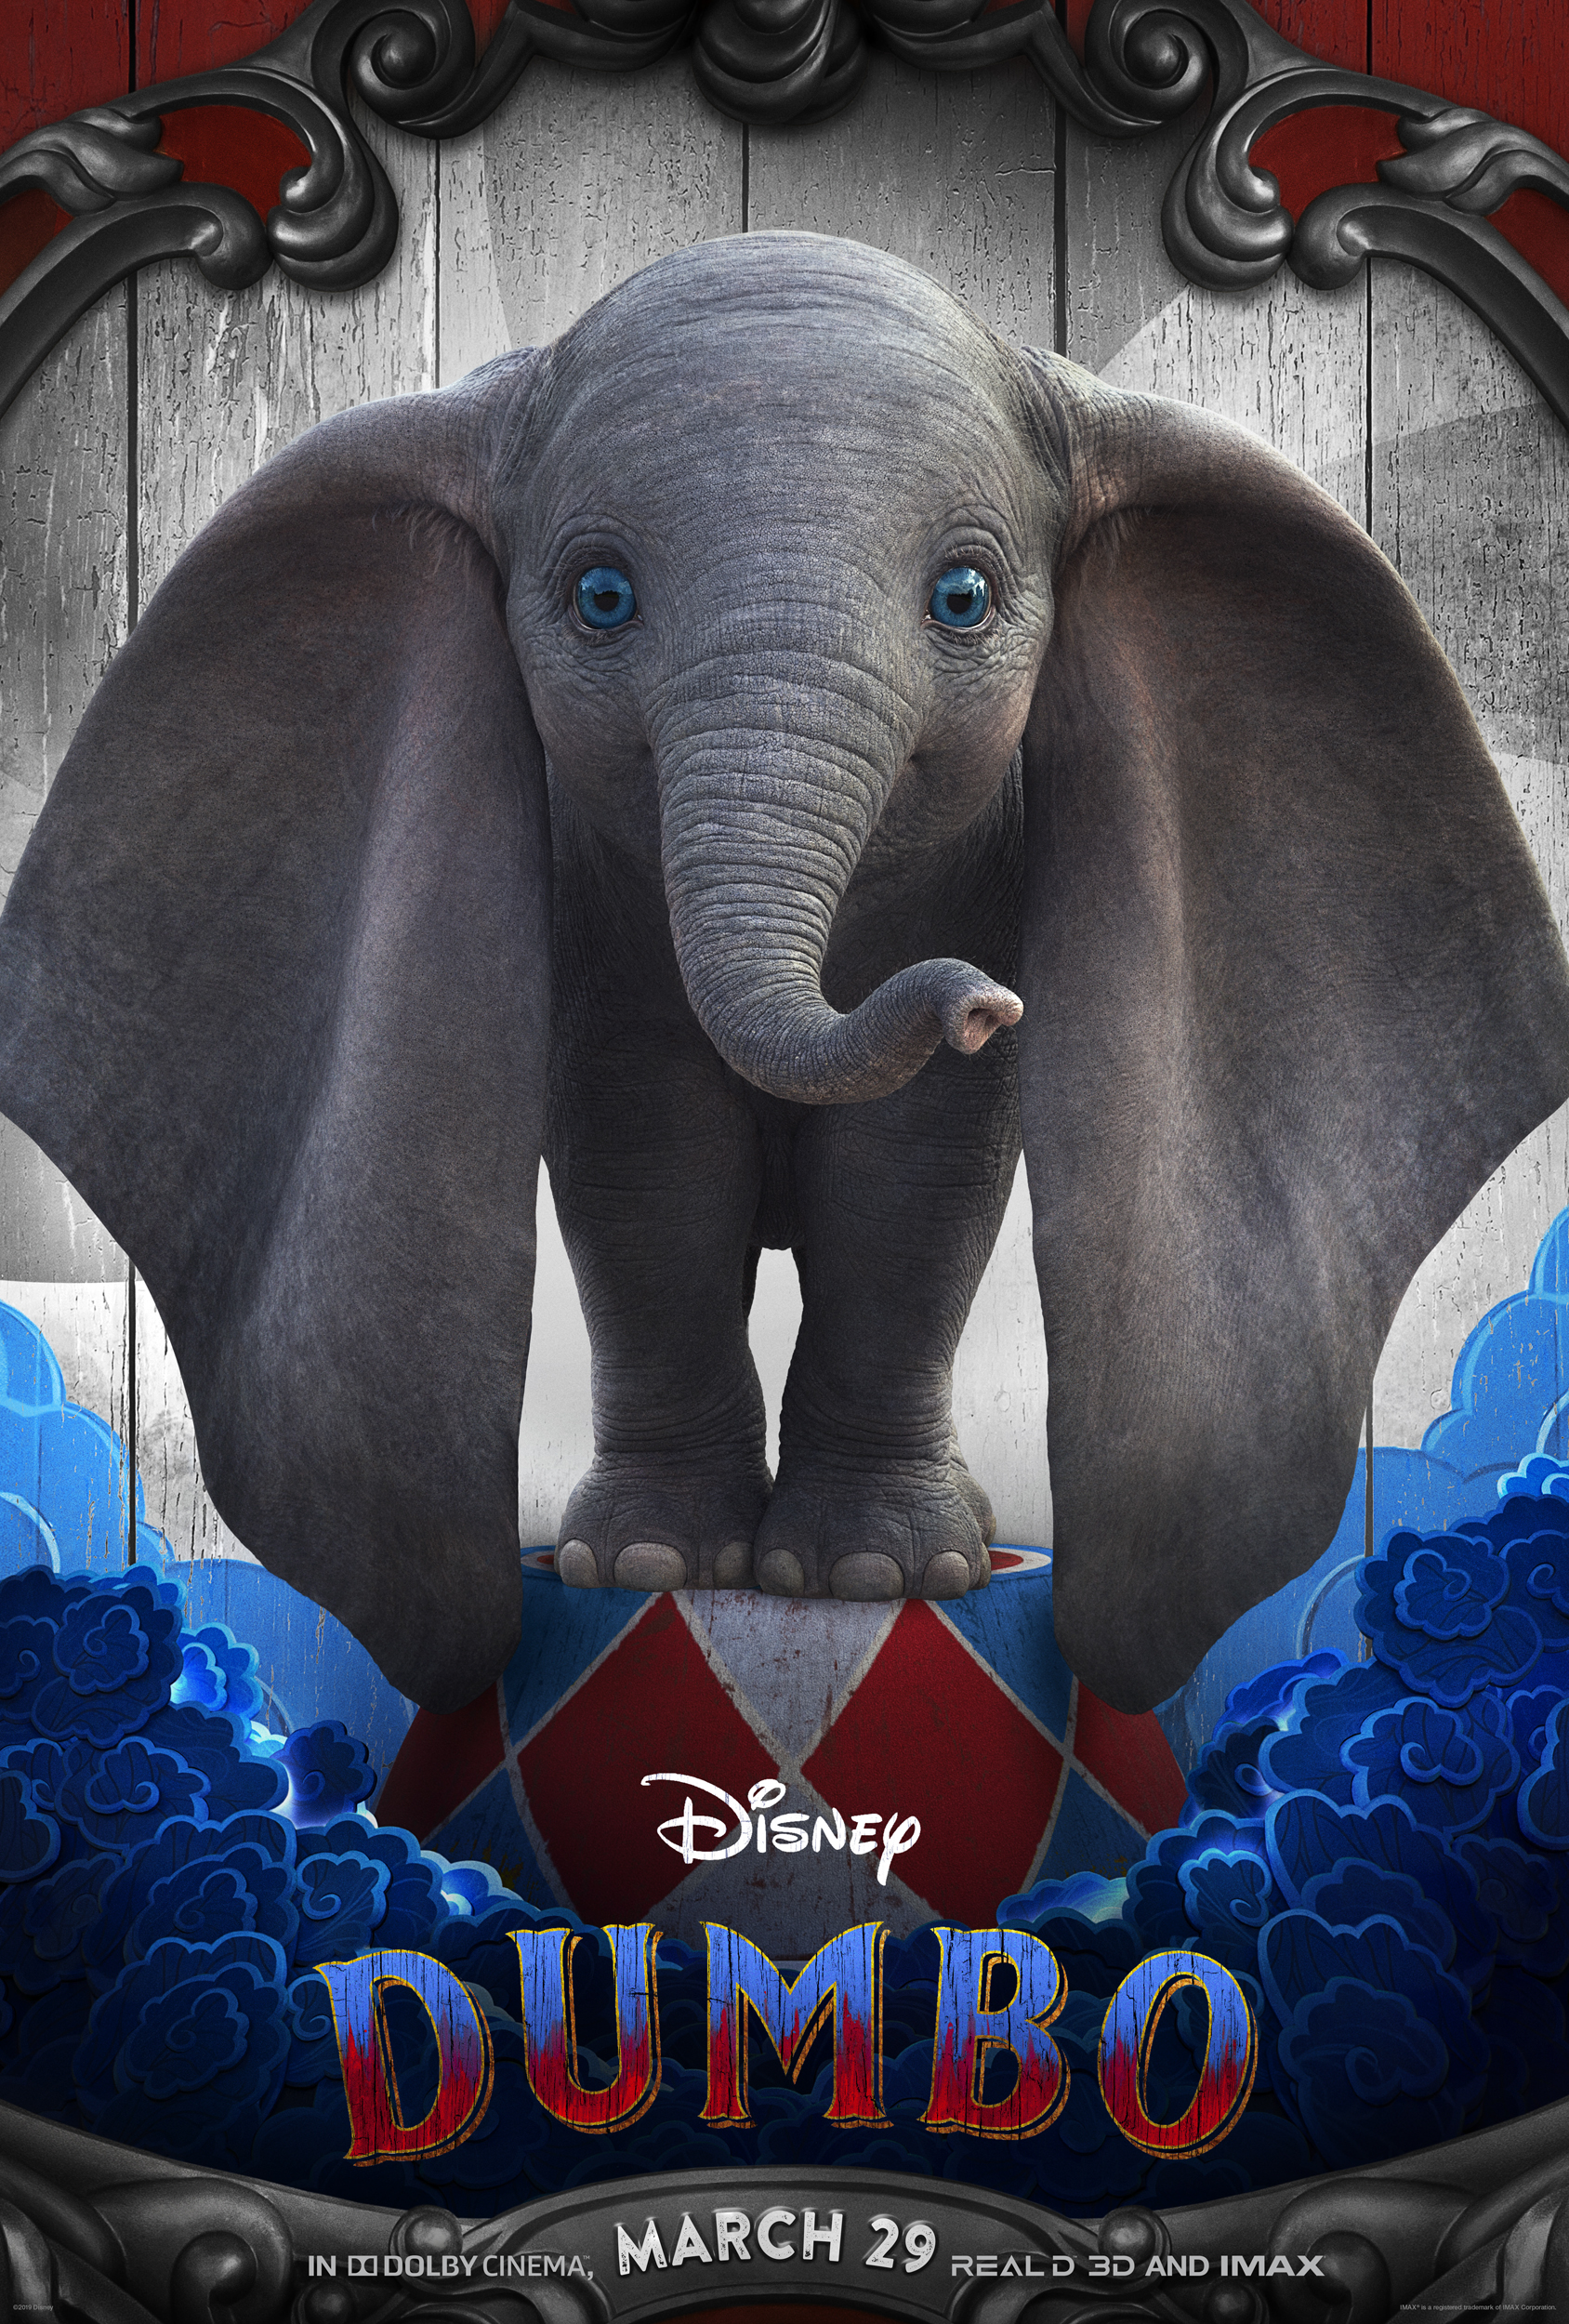 New Dumbo Live Action Movie Posters Released!